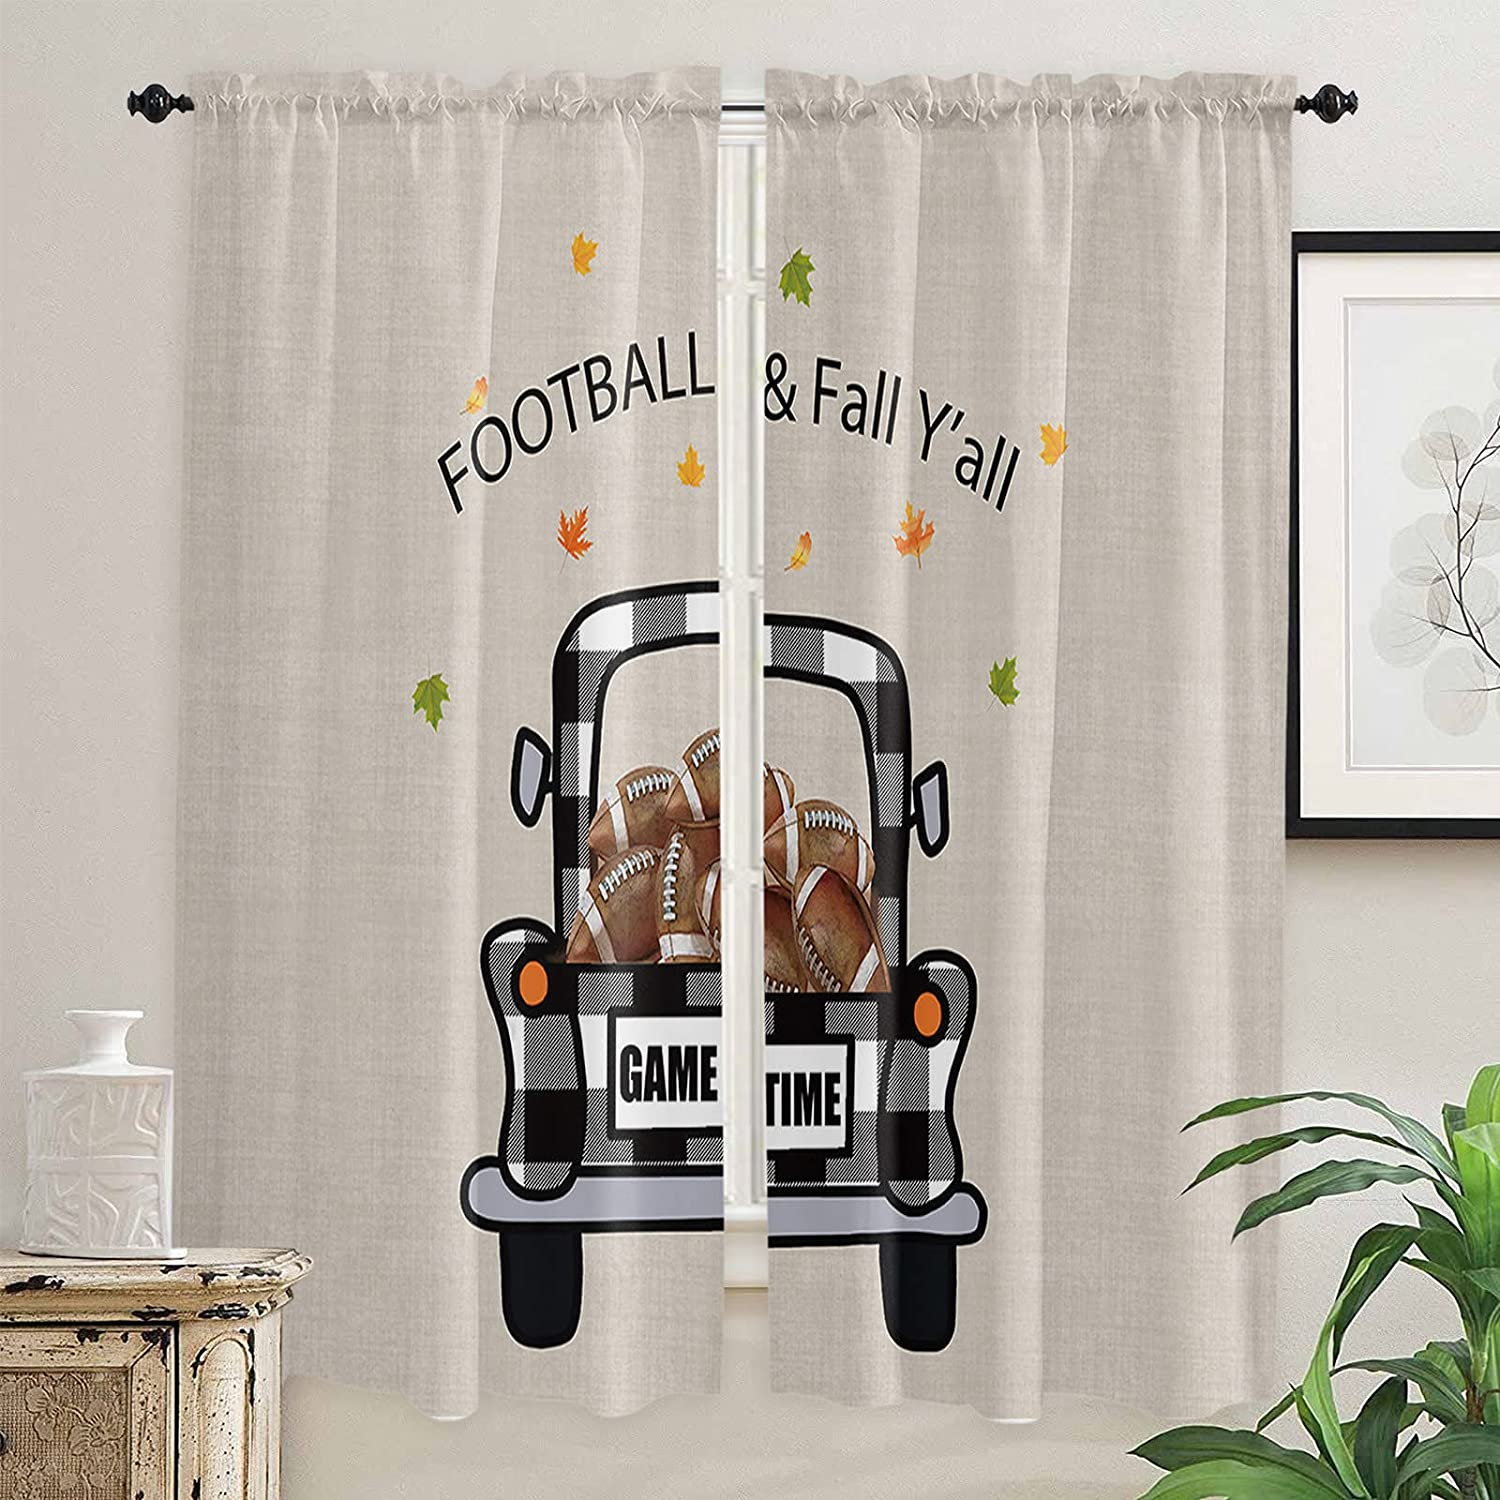 Ranking TOP6 Football Fall Y'all Kitchen Curtains Windows Inch Ranking TOP1 for Length 72